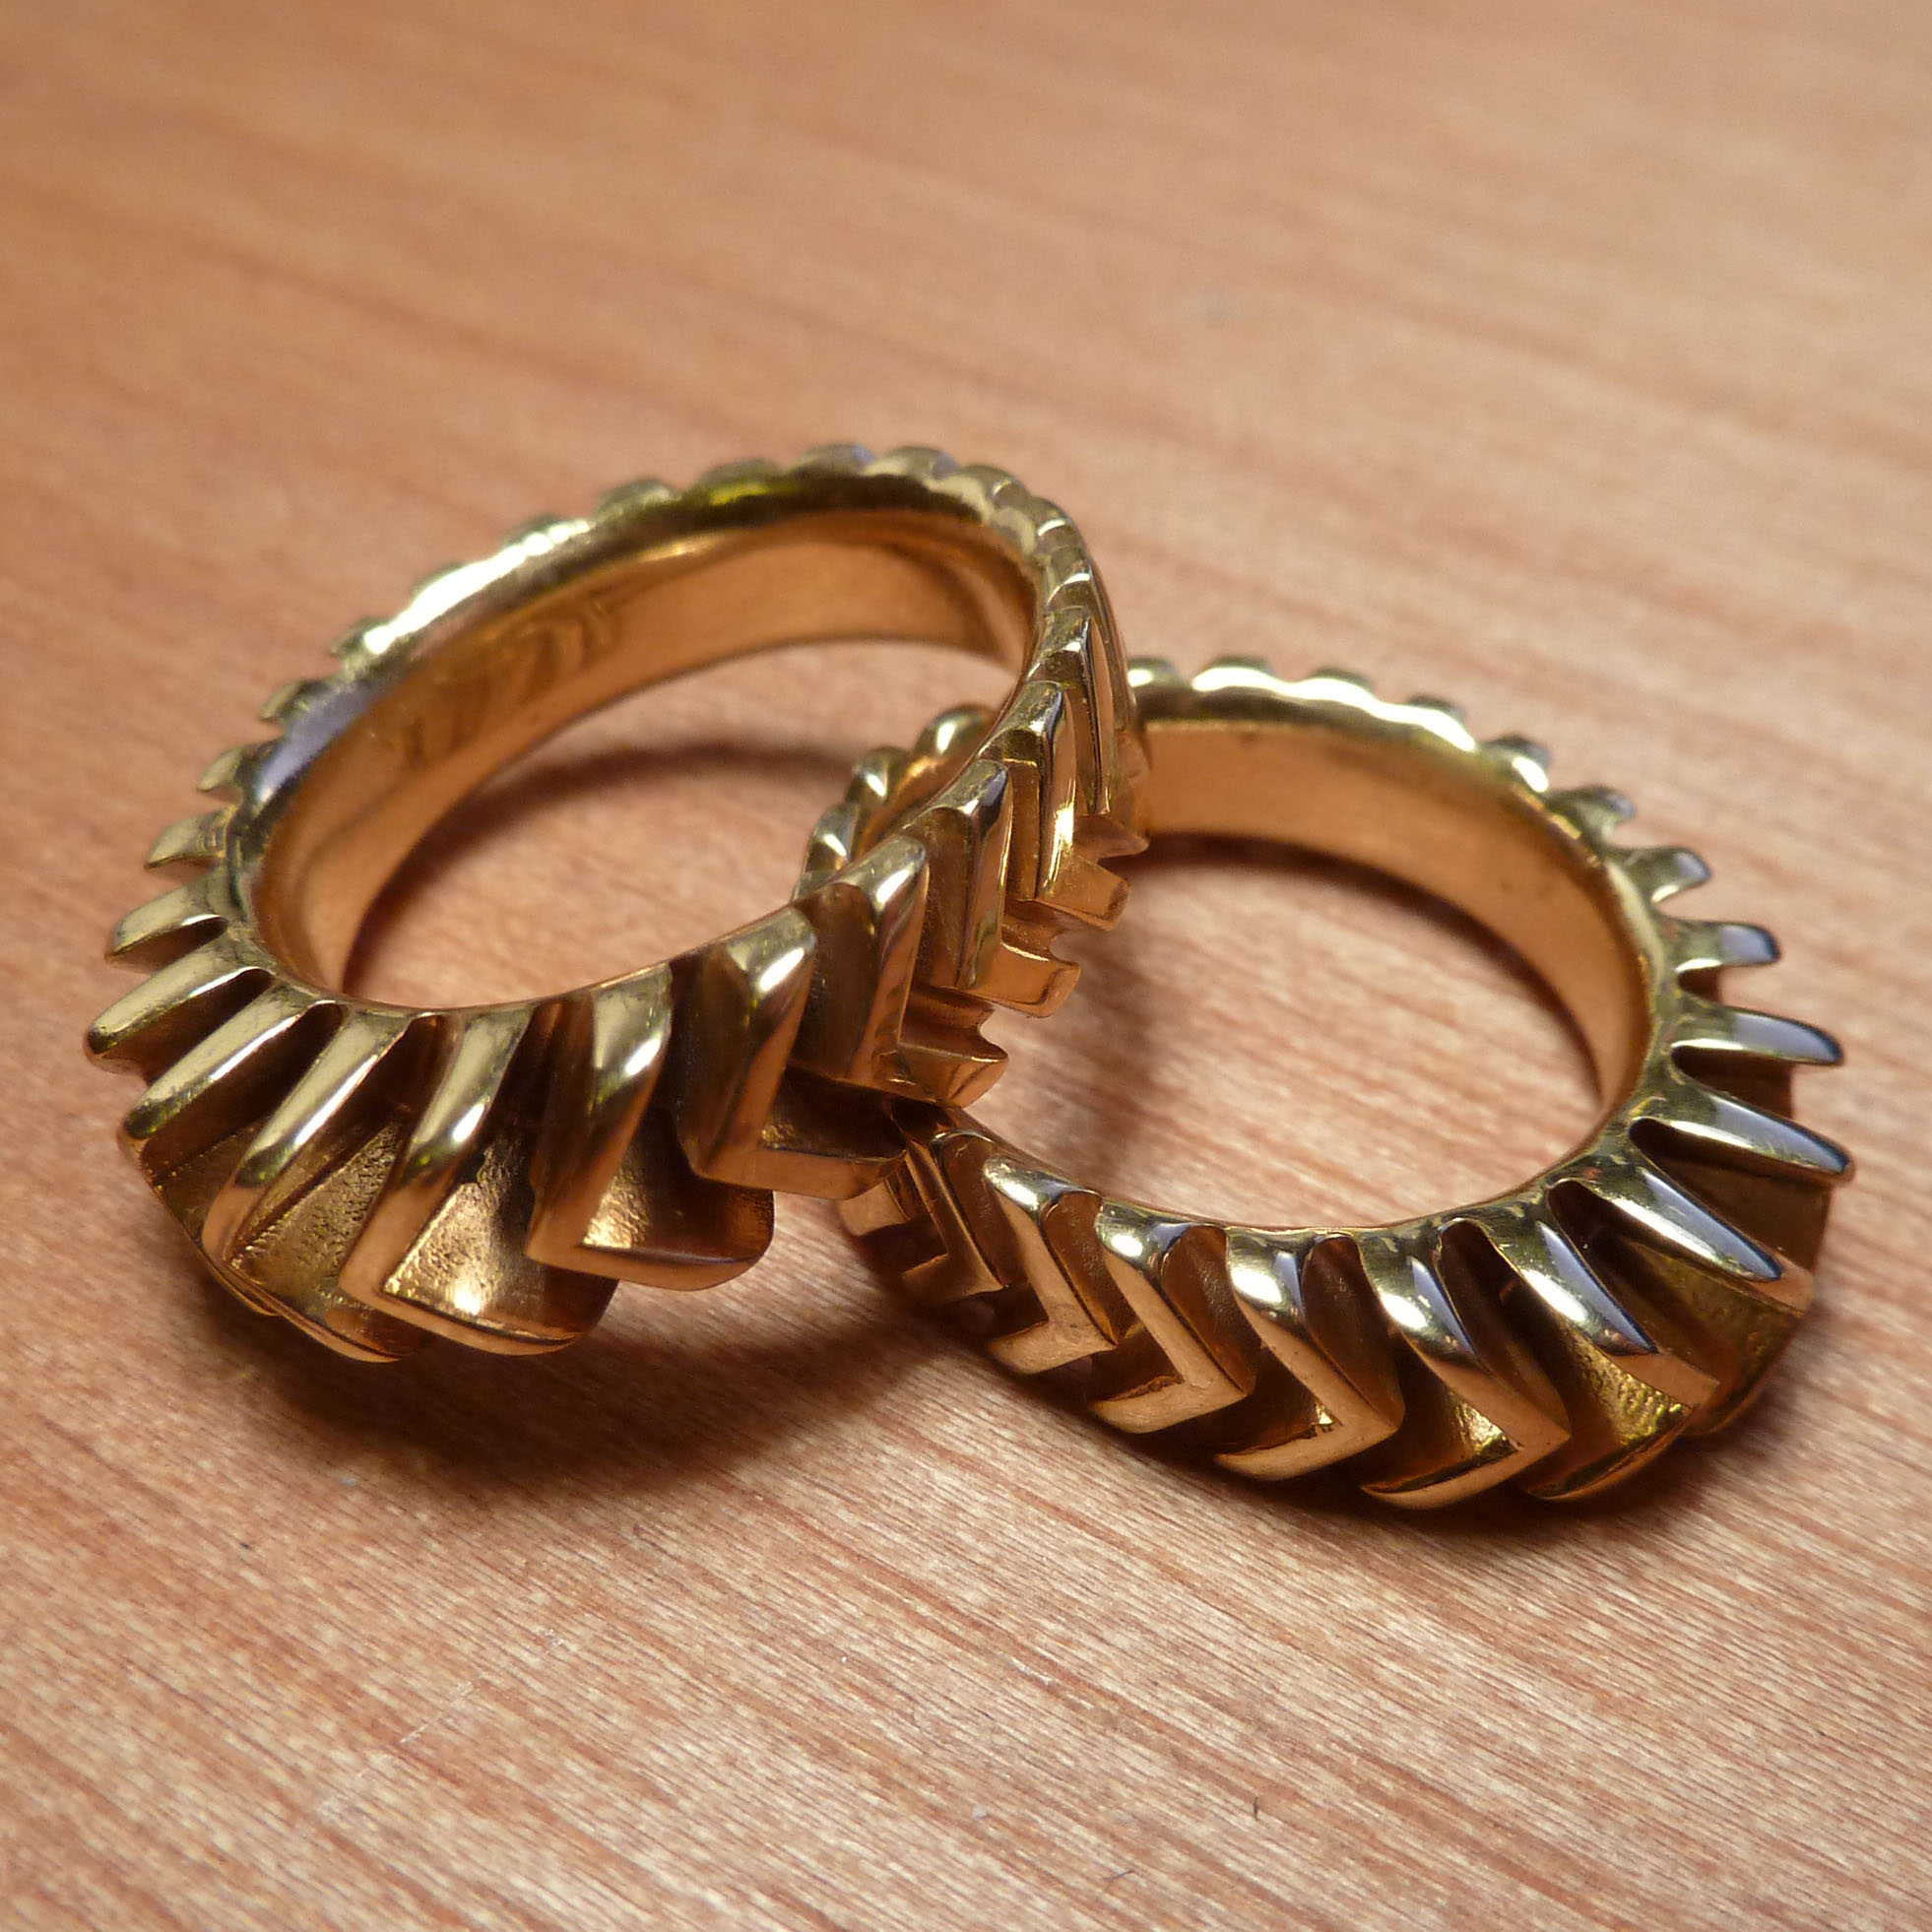 gold plated brass 3d printed sun sprocket grip rings